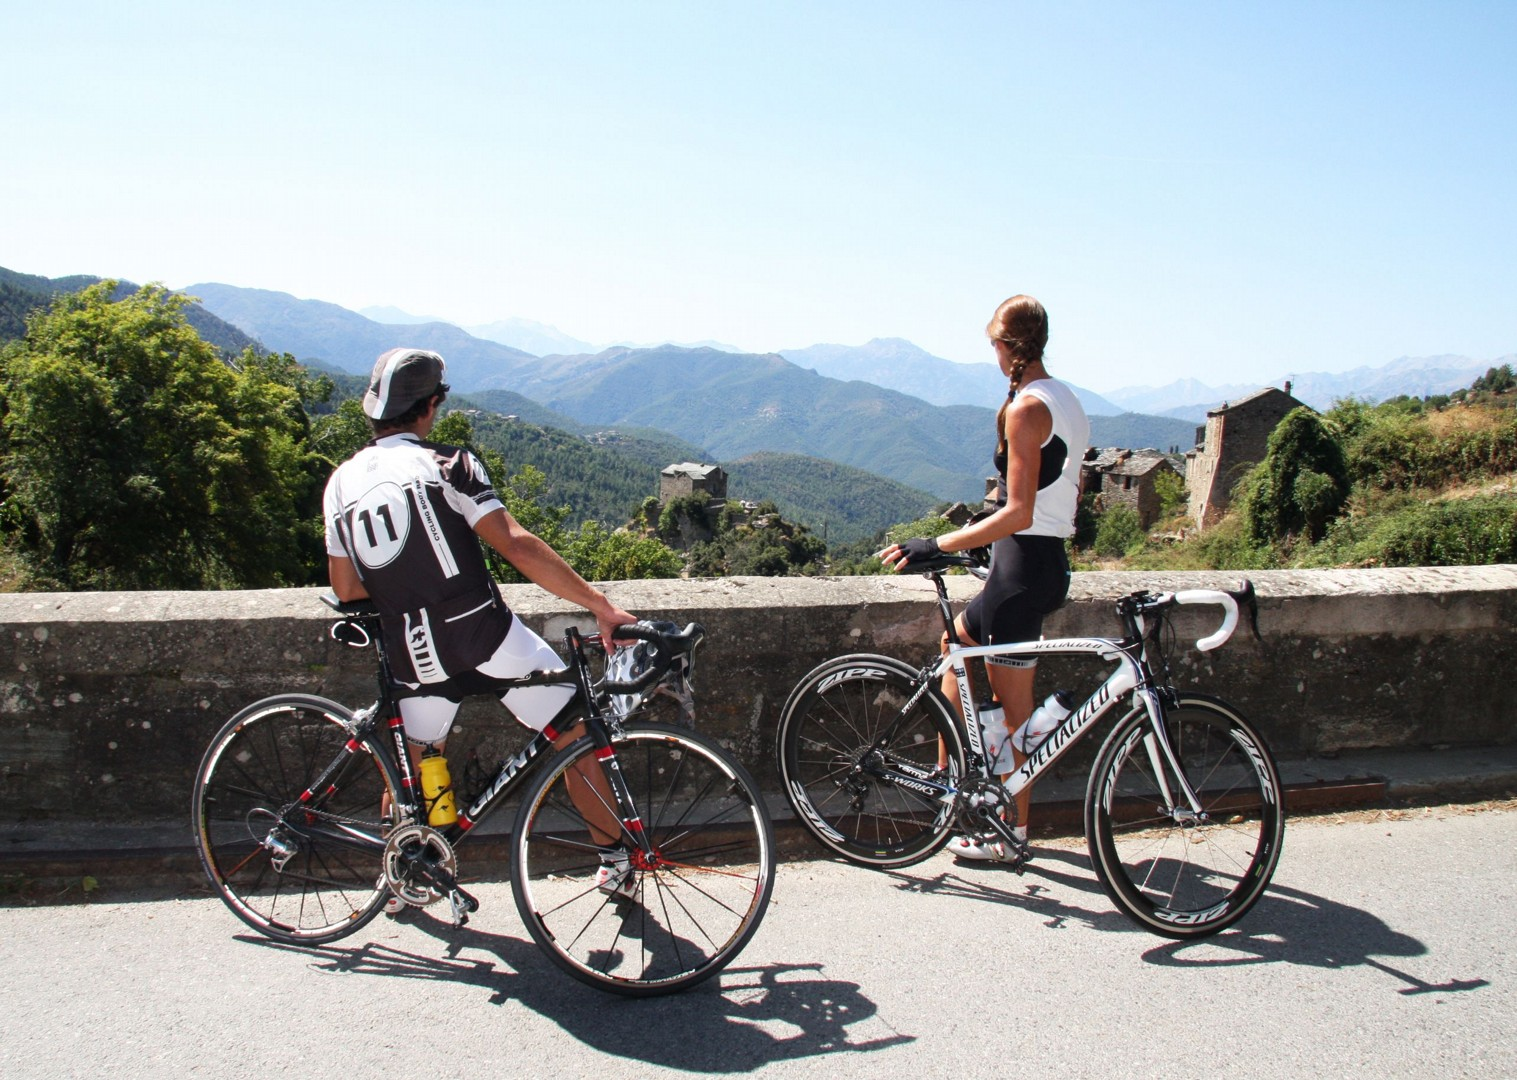 corsica-guided-road-cycling-holiday-the-beautiful-isle.jpg - France - Corsica - The Beautiful Isle - Guided Road Cycling Holiday - Road Cycling